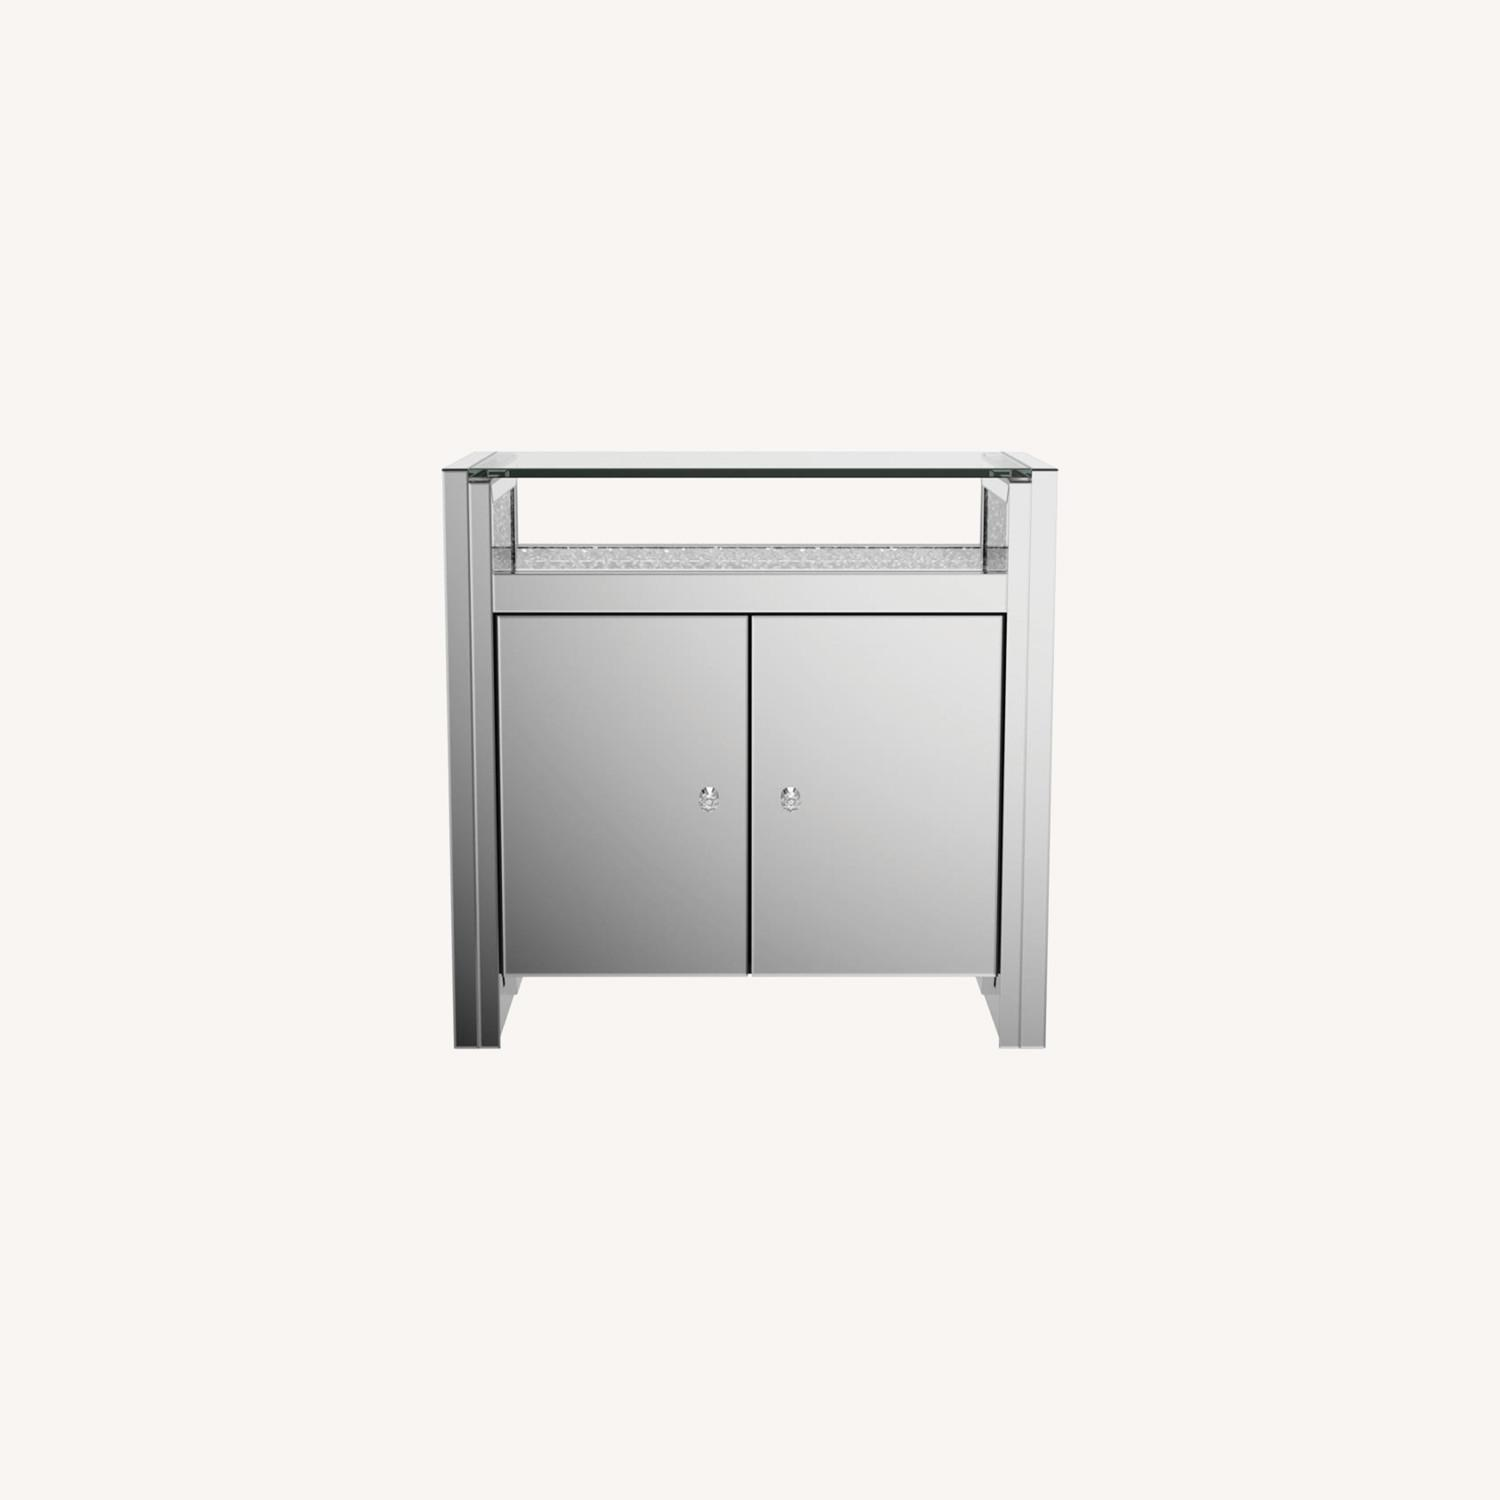 Cabinet In Silver & Clear Mirror Finish - image-8